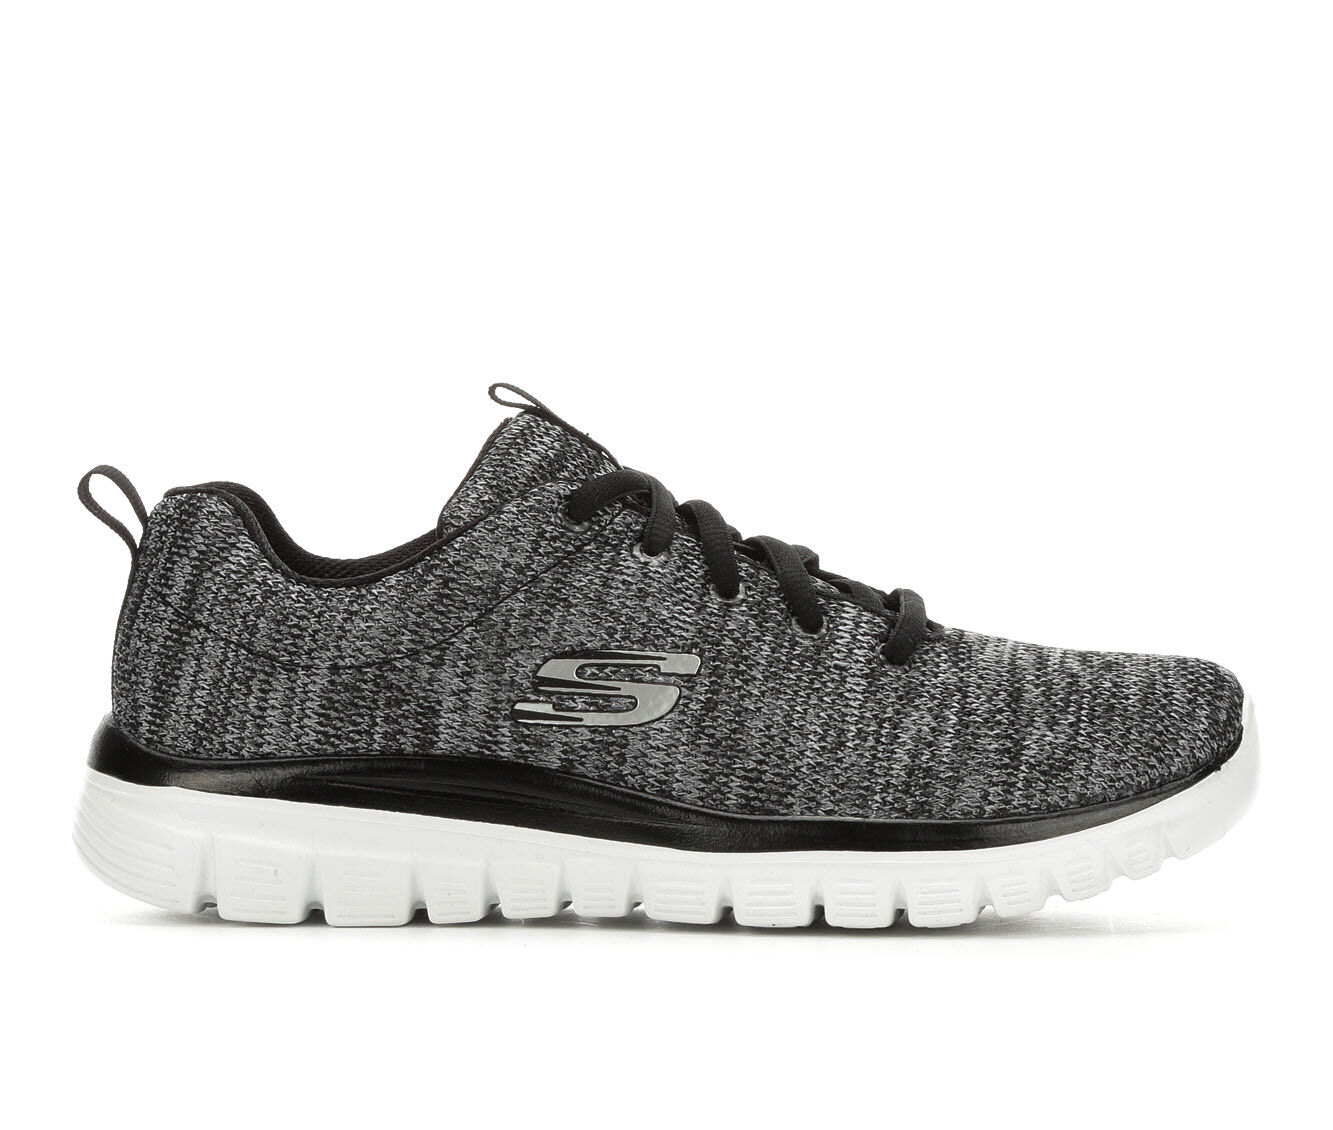 fast delivery avialable Women's Skechers Twisted Fortune 12614 Sneakers Black/White